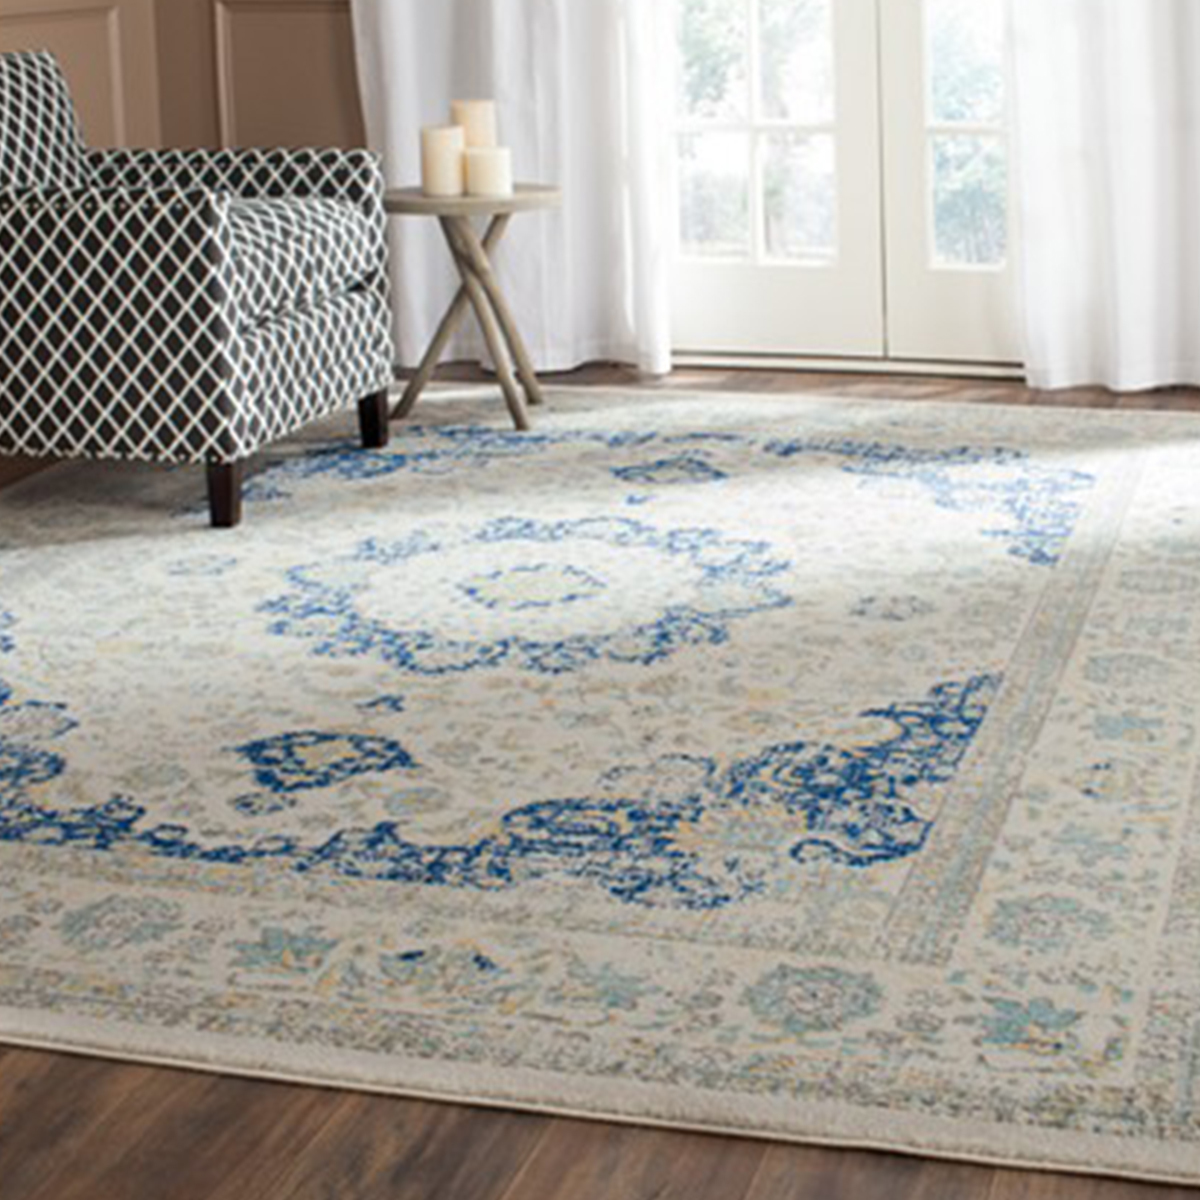 Persian-inspired rug in blue and ivory photo